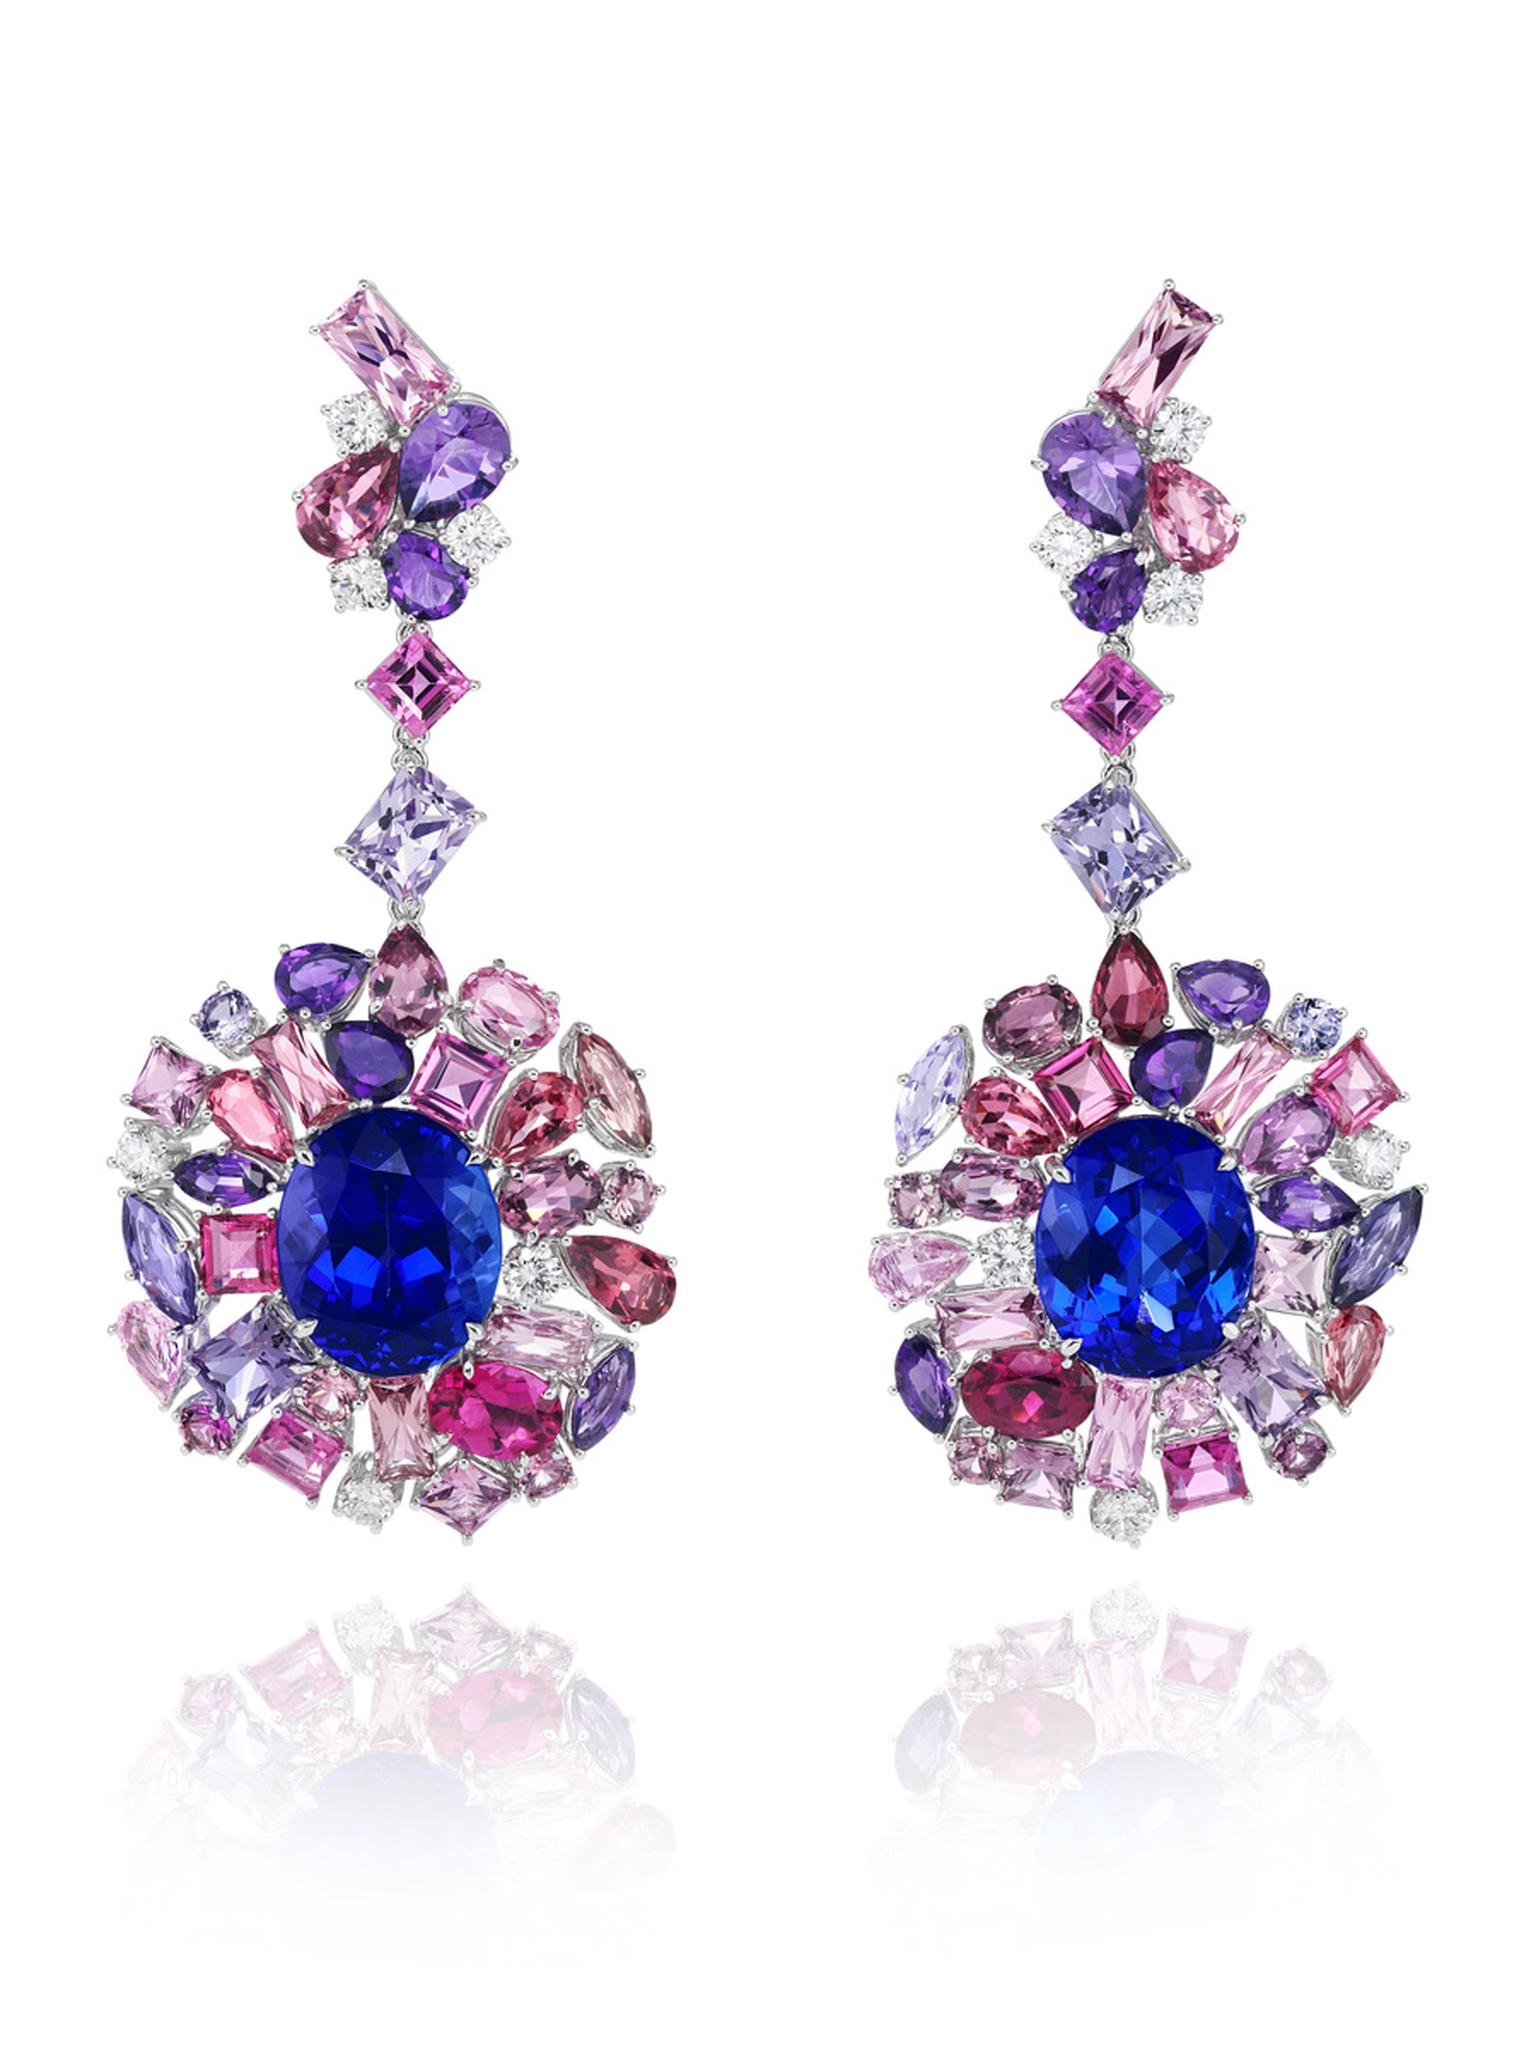 Chopard-Tanzanite-Earrings--from-the-Red-Carpet-Collection-2013.jpg